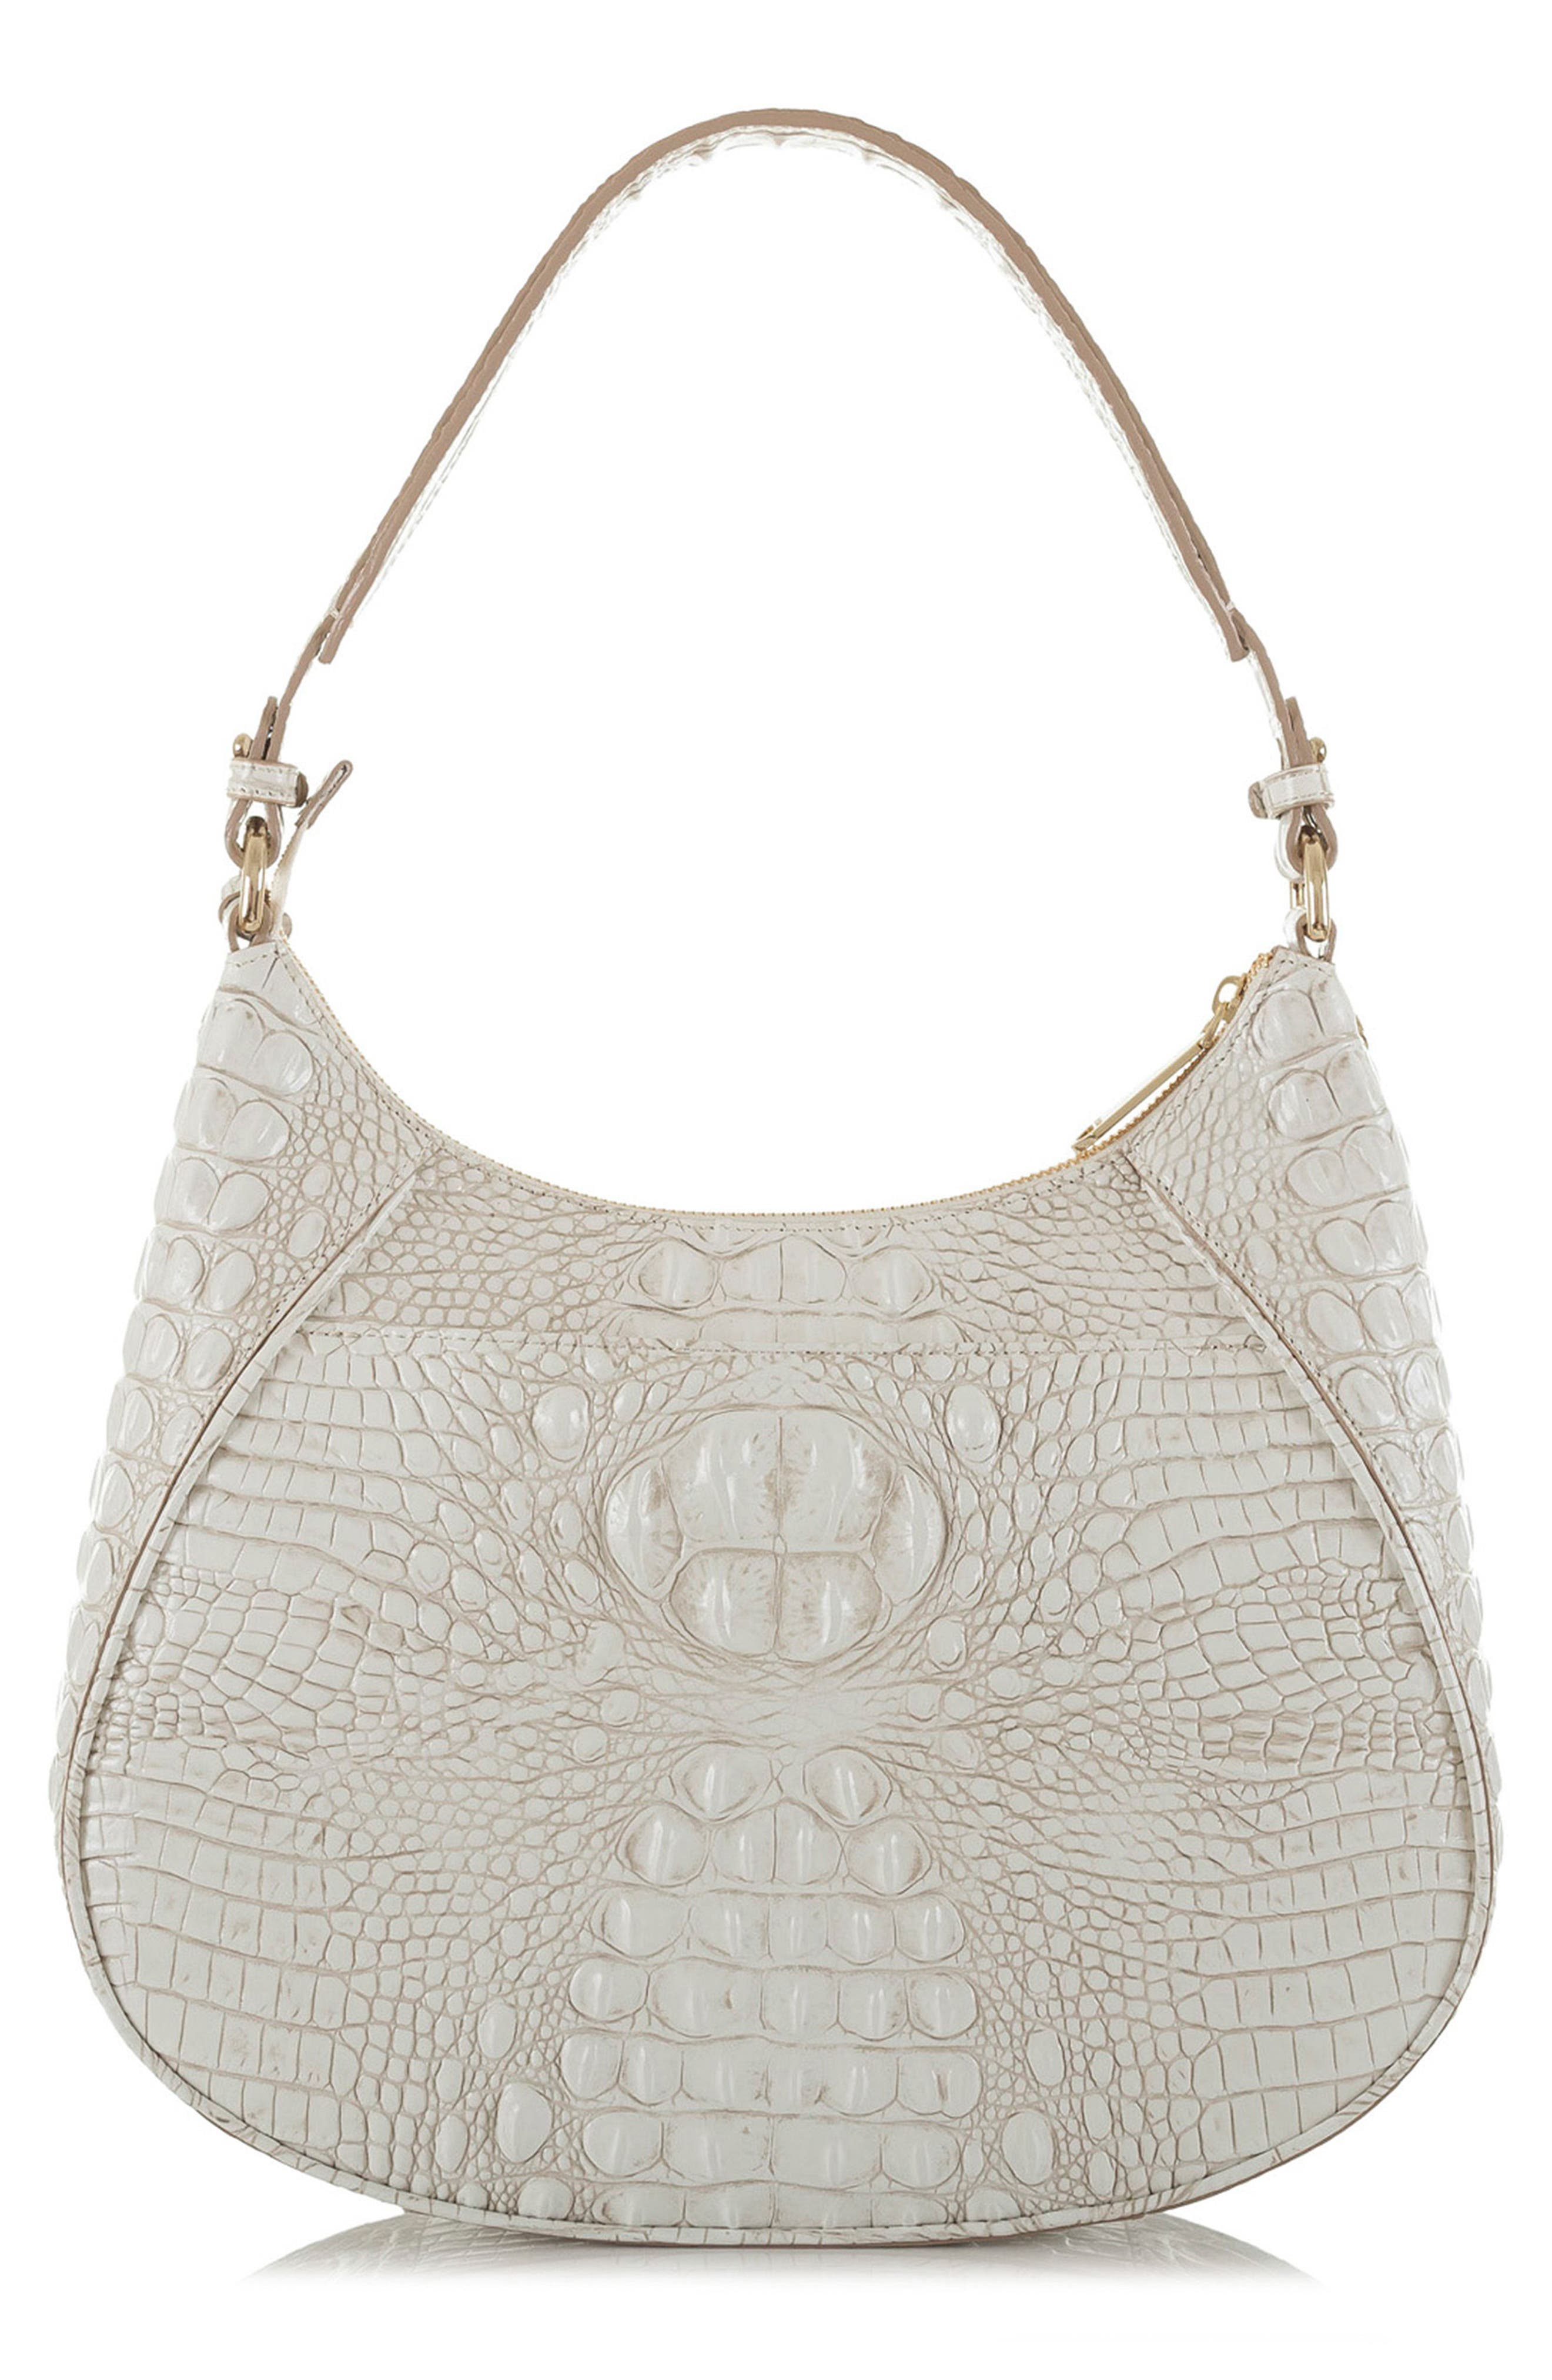 BRAHMIN,                             Melbourne Amira Shoulder Bag,                             Alternate thumbnail 2, color,                             100